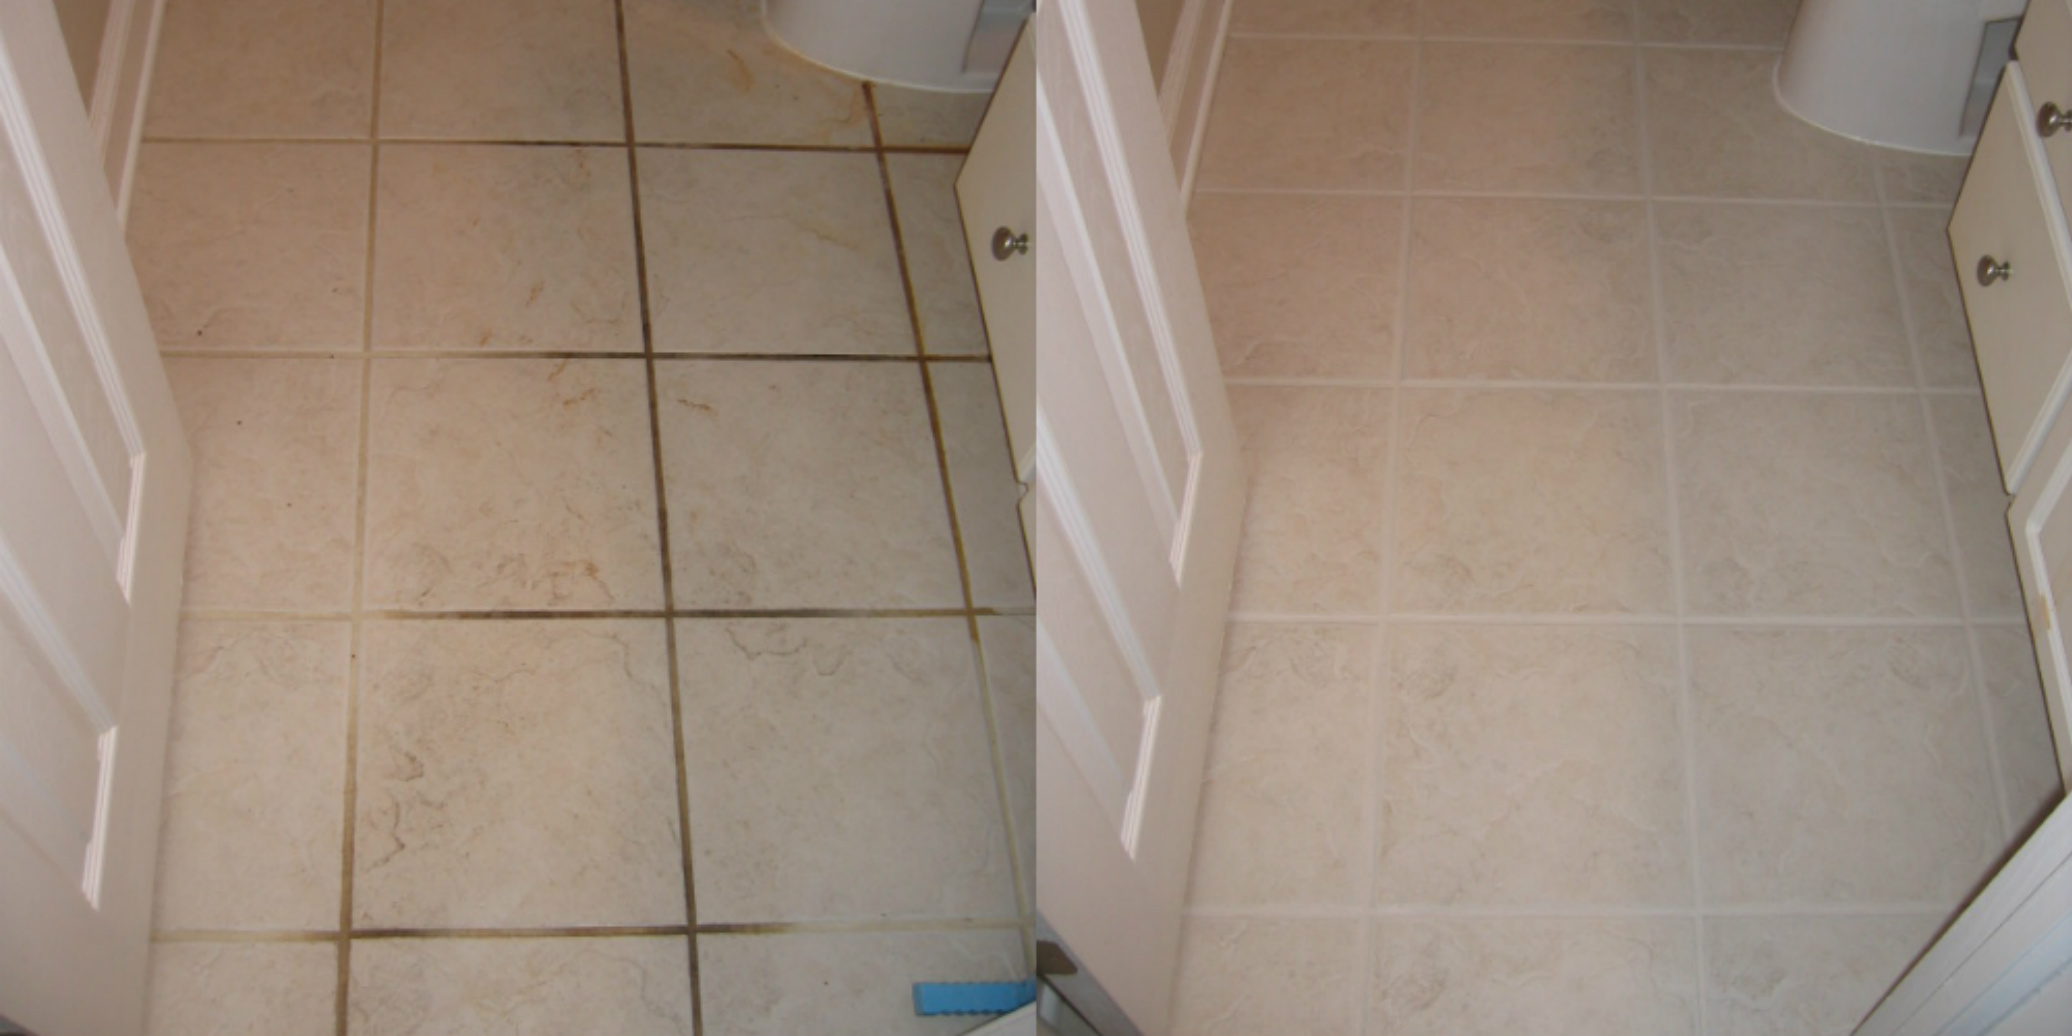 Tile and Grout Cleaning Services Somerville